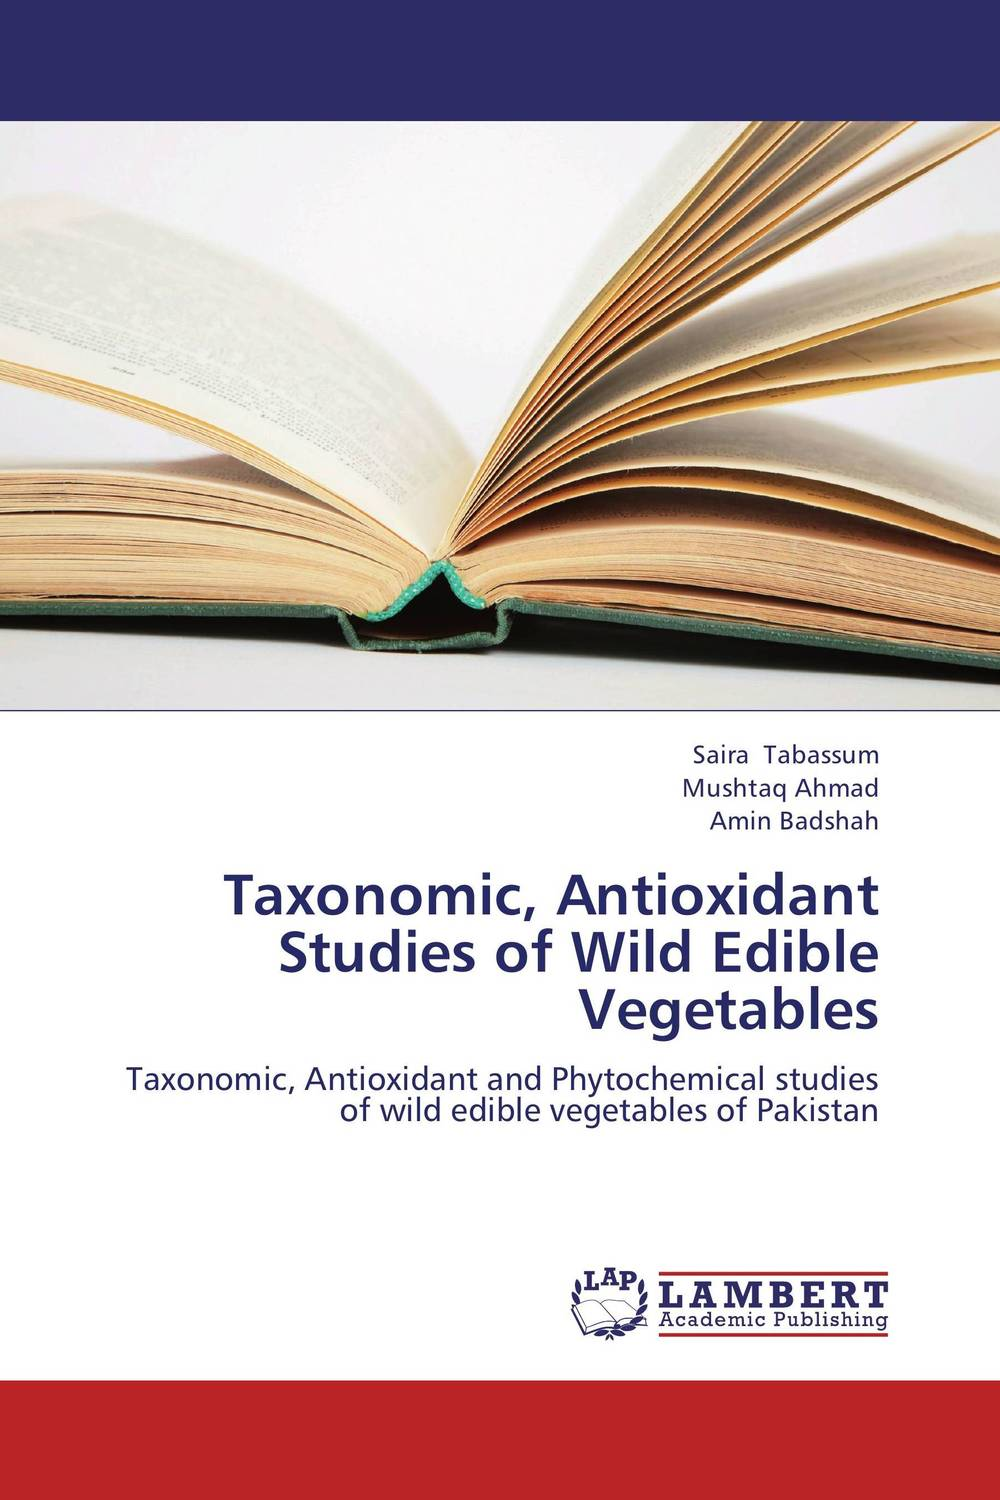 Taxonomic, Antioxidant Studies of Wild Edible Vegetables viruses cell transformation and cancer 5